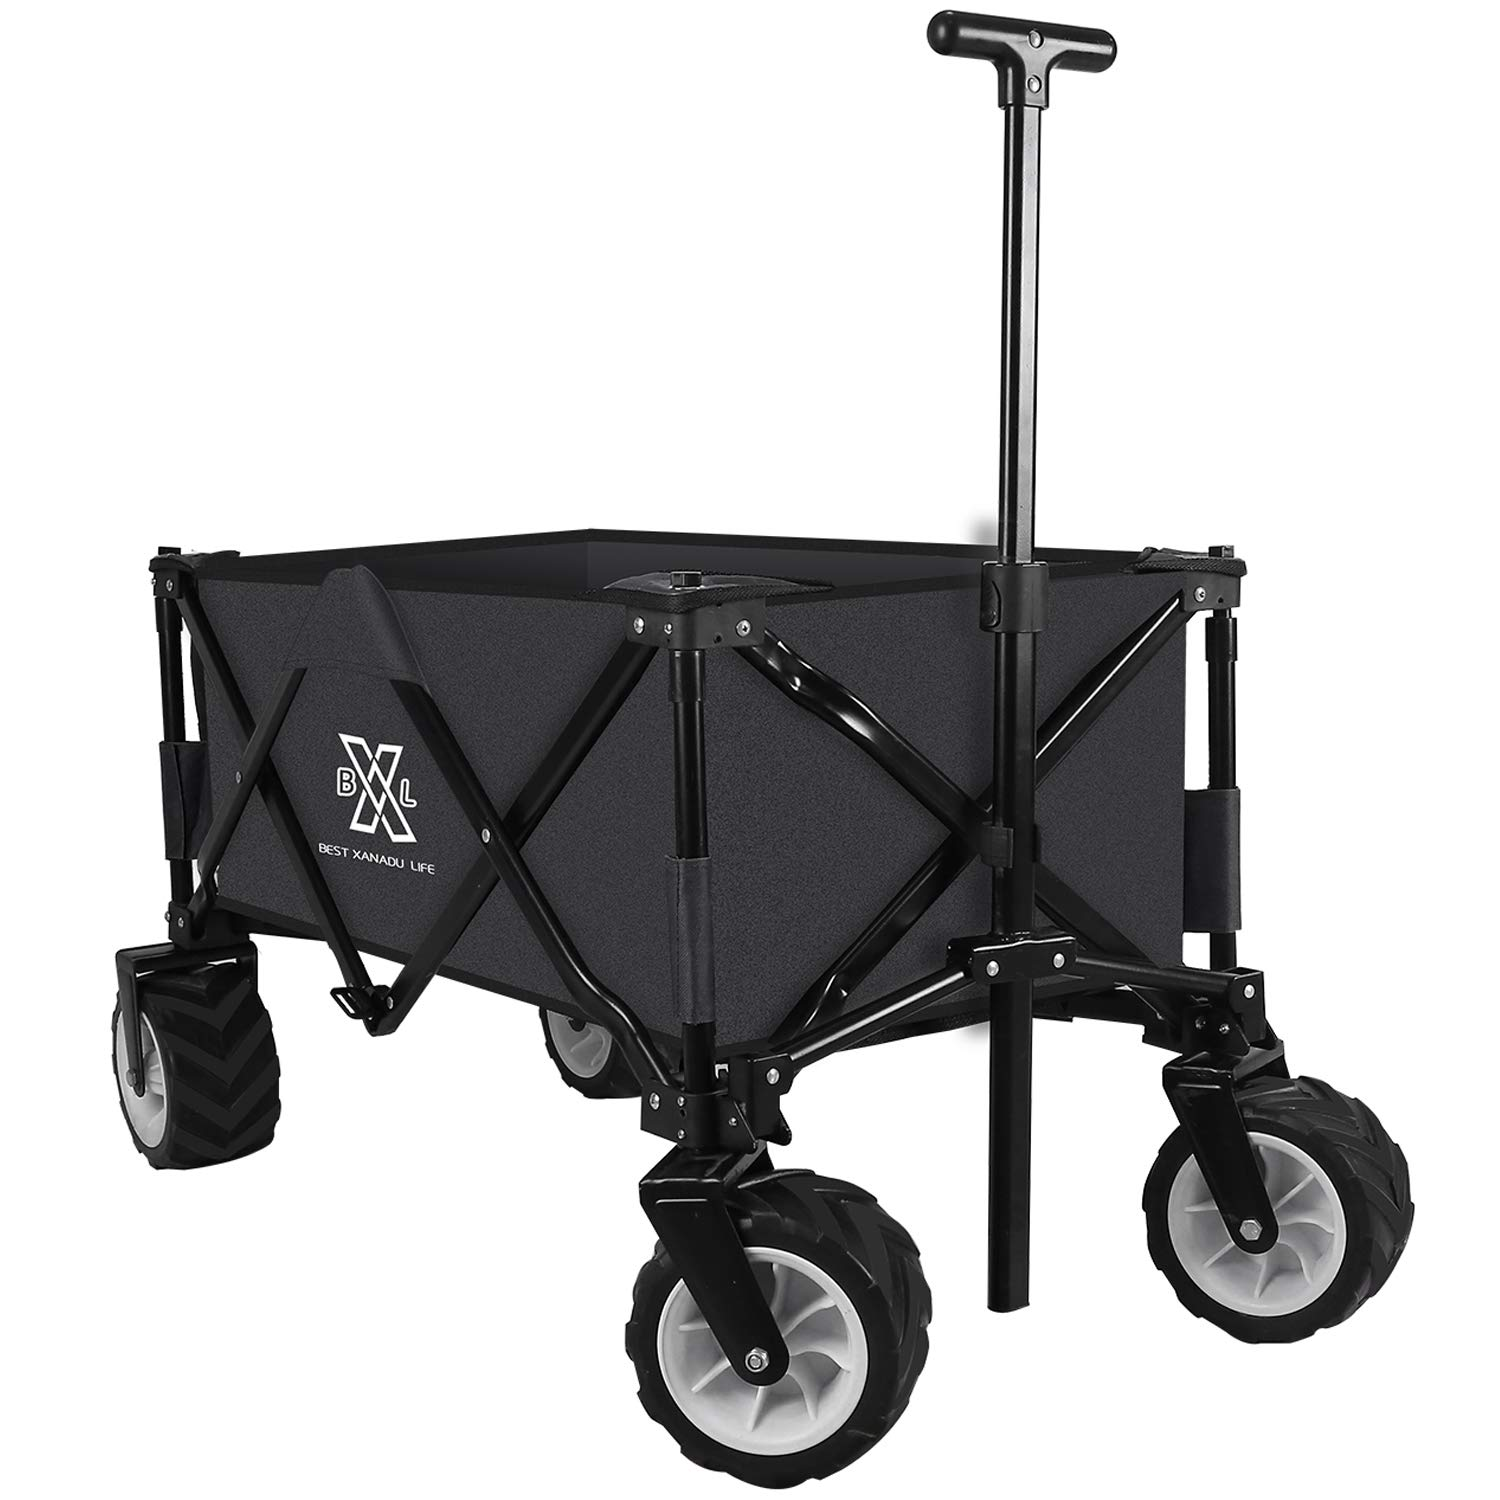 BXL Heavy Duty Collapsible Folding Garden Cart Utility Wagon for Shopping Outdoors (Black)